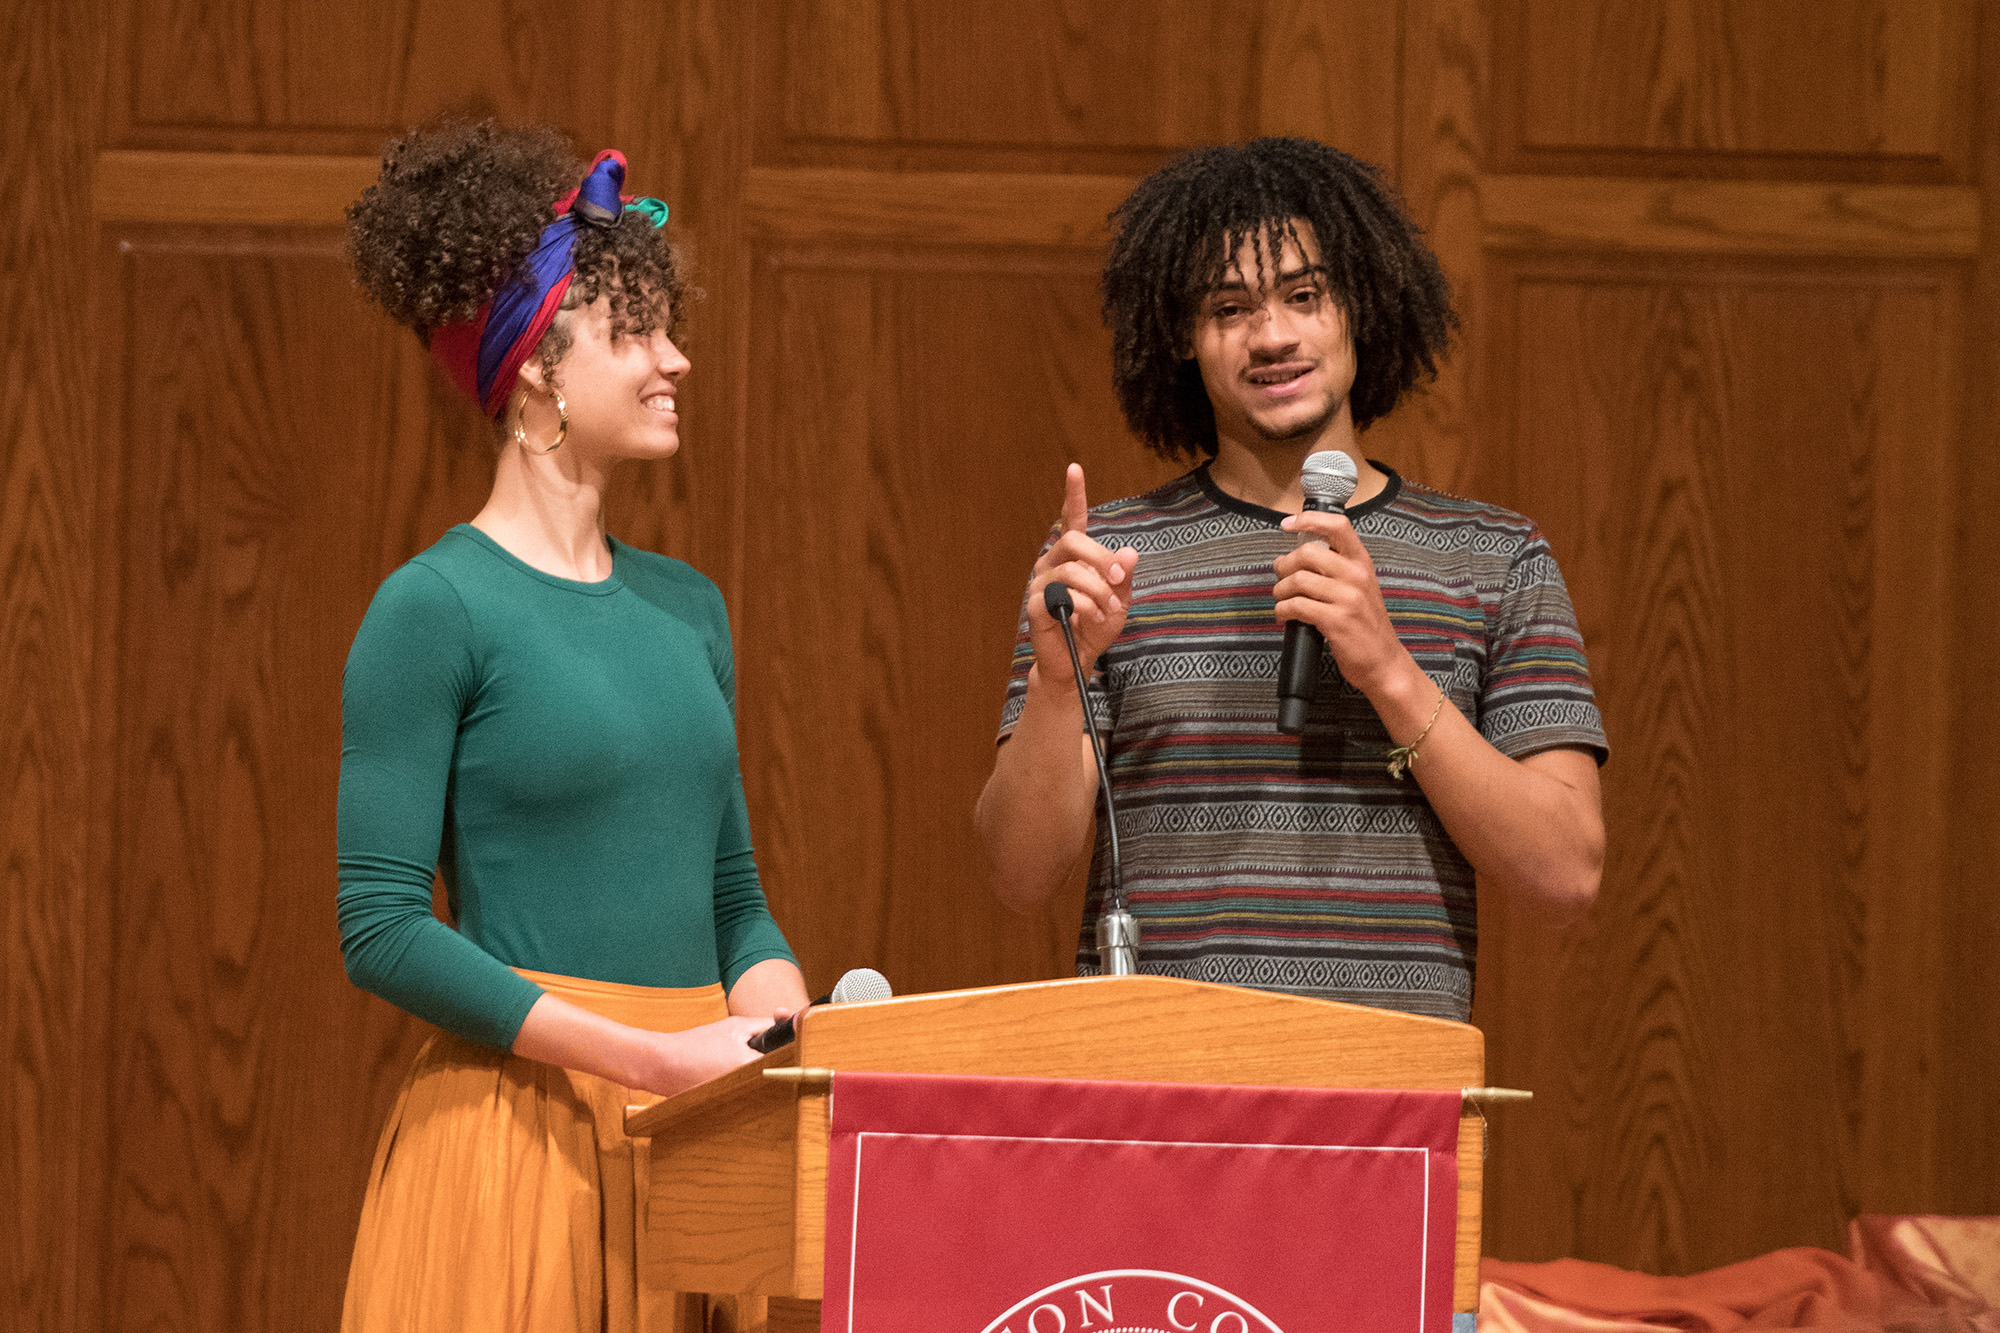 Siblings Makayla '15 and David '18 Ladwig speak at Homecoming 2019's Friday Forum.